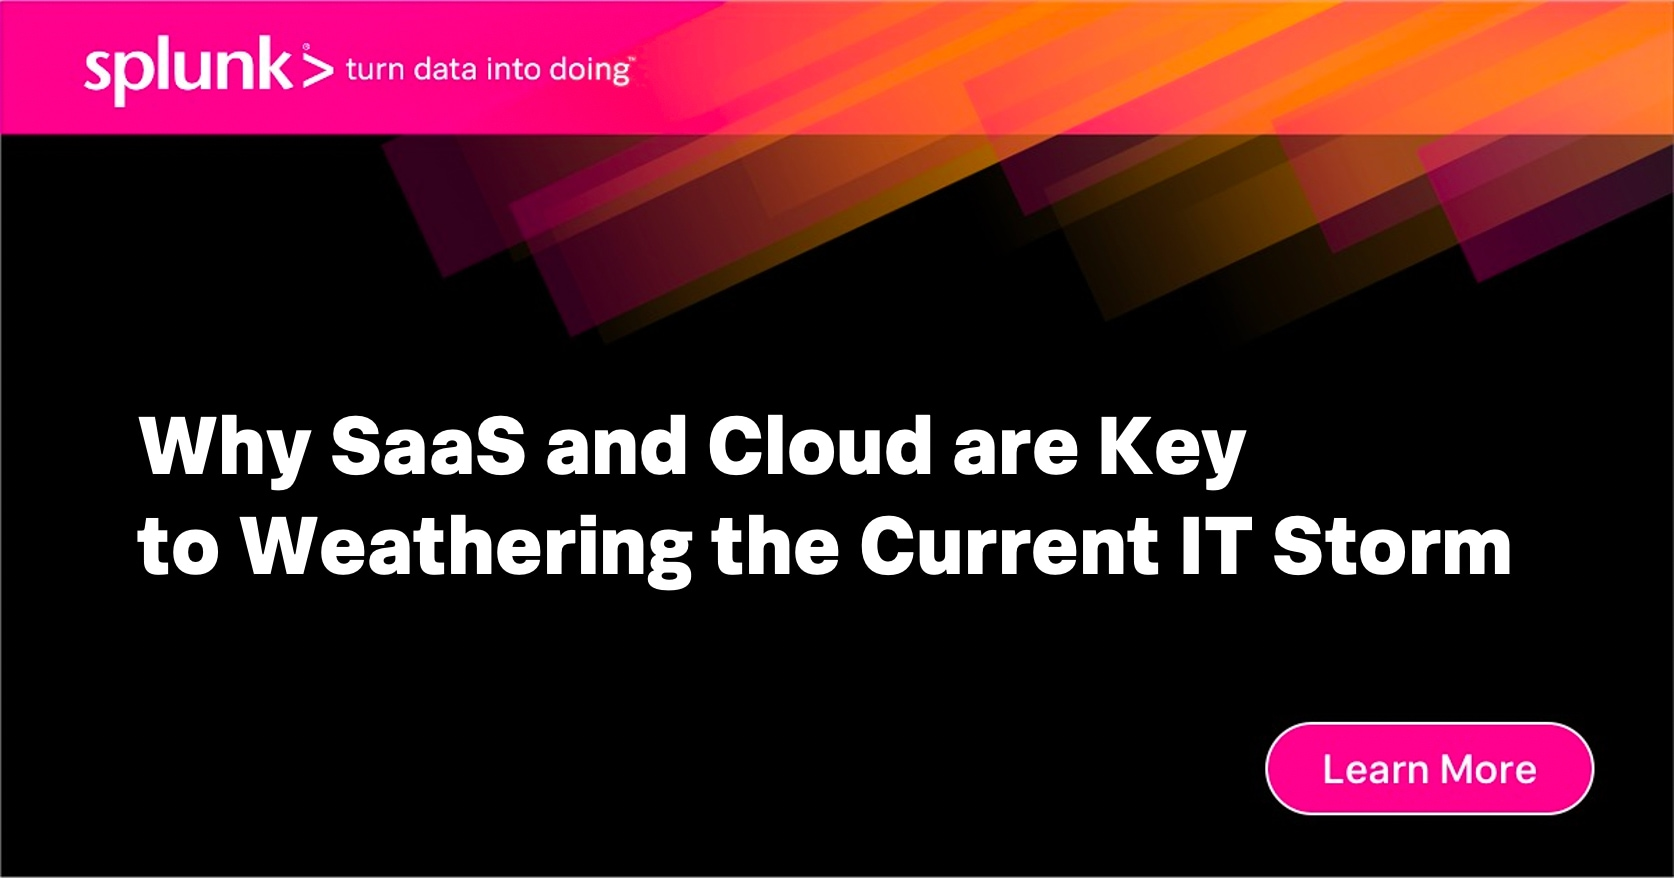 Why SaaS and Cloud are Key to Weathering the Current iT Storm